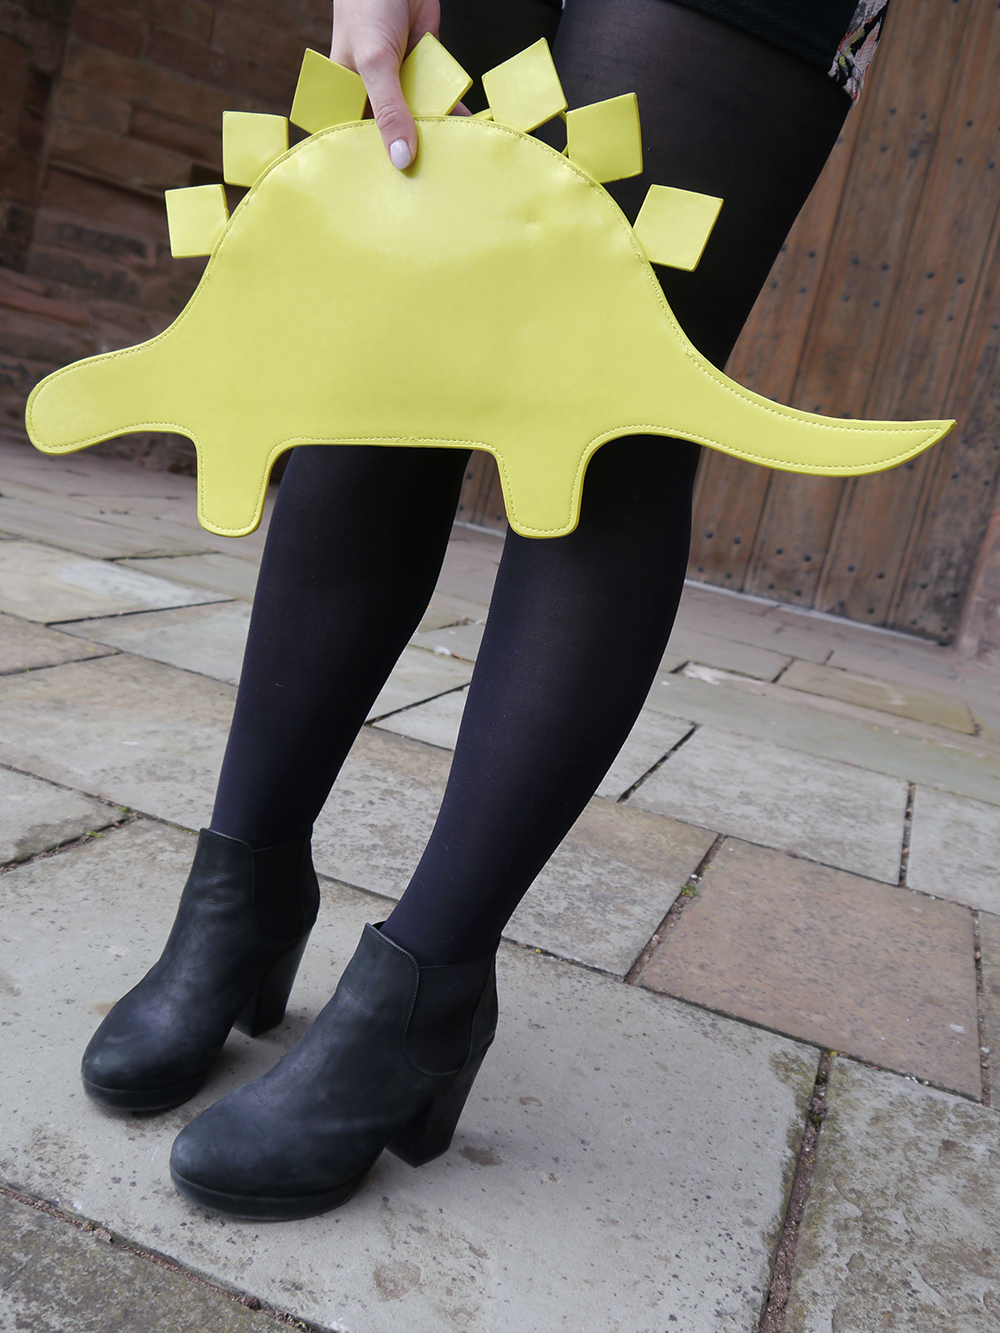 neone yellow handbag, The White Pepper novelty bag, Arbroath Abbey fashion photoshoot, black suede heeled Topshop boots, blogger favourite